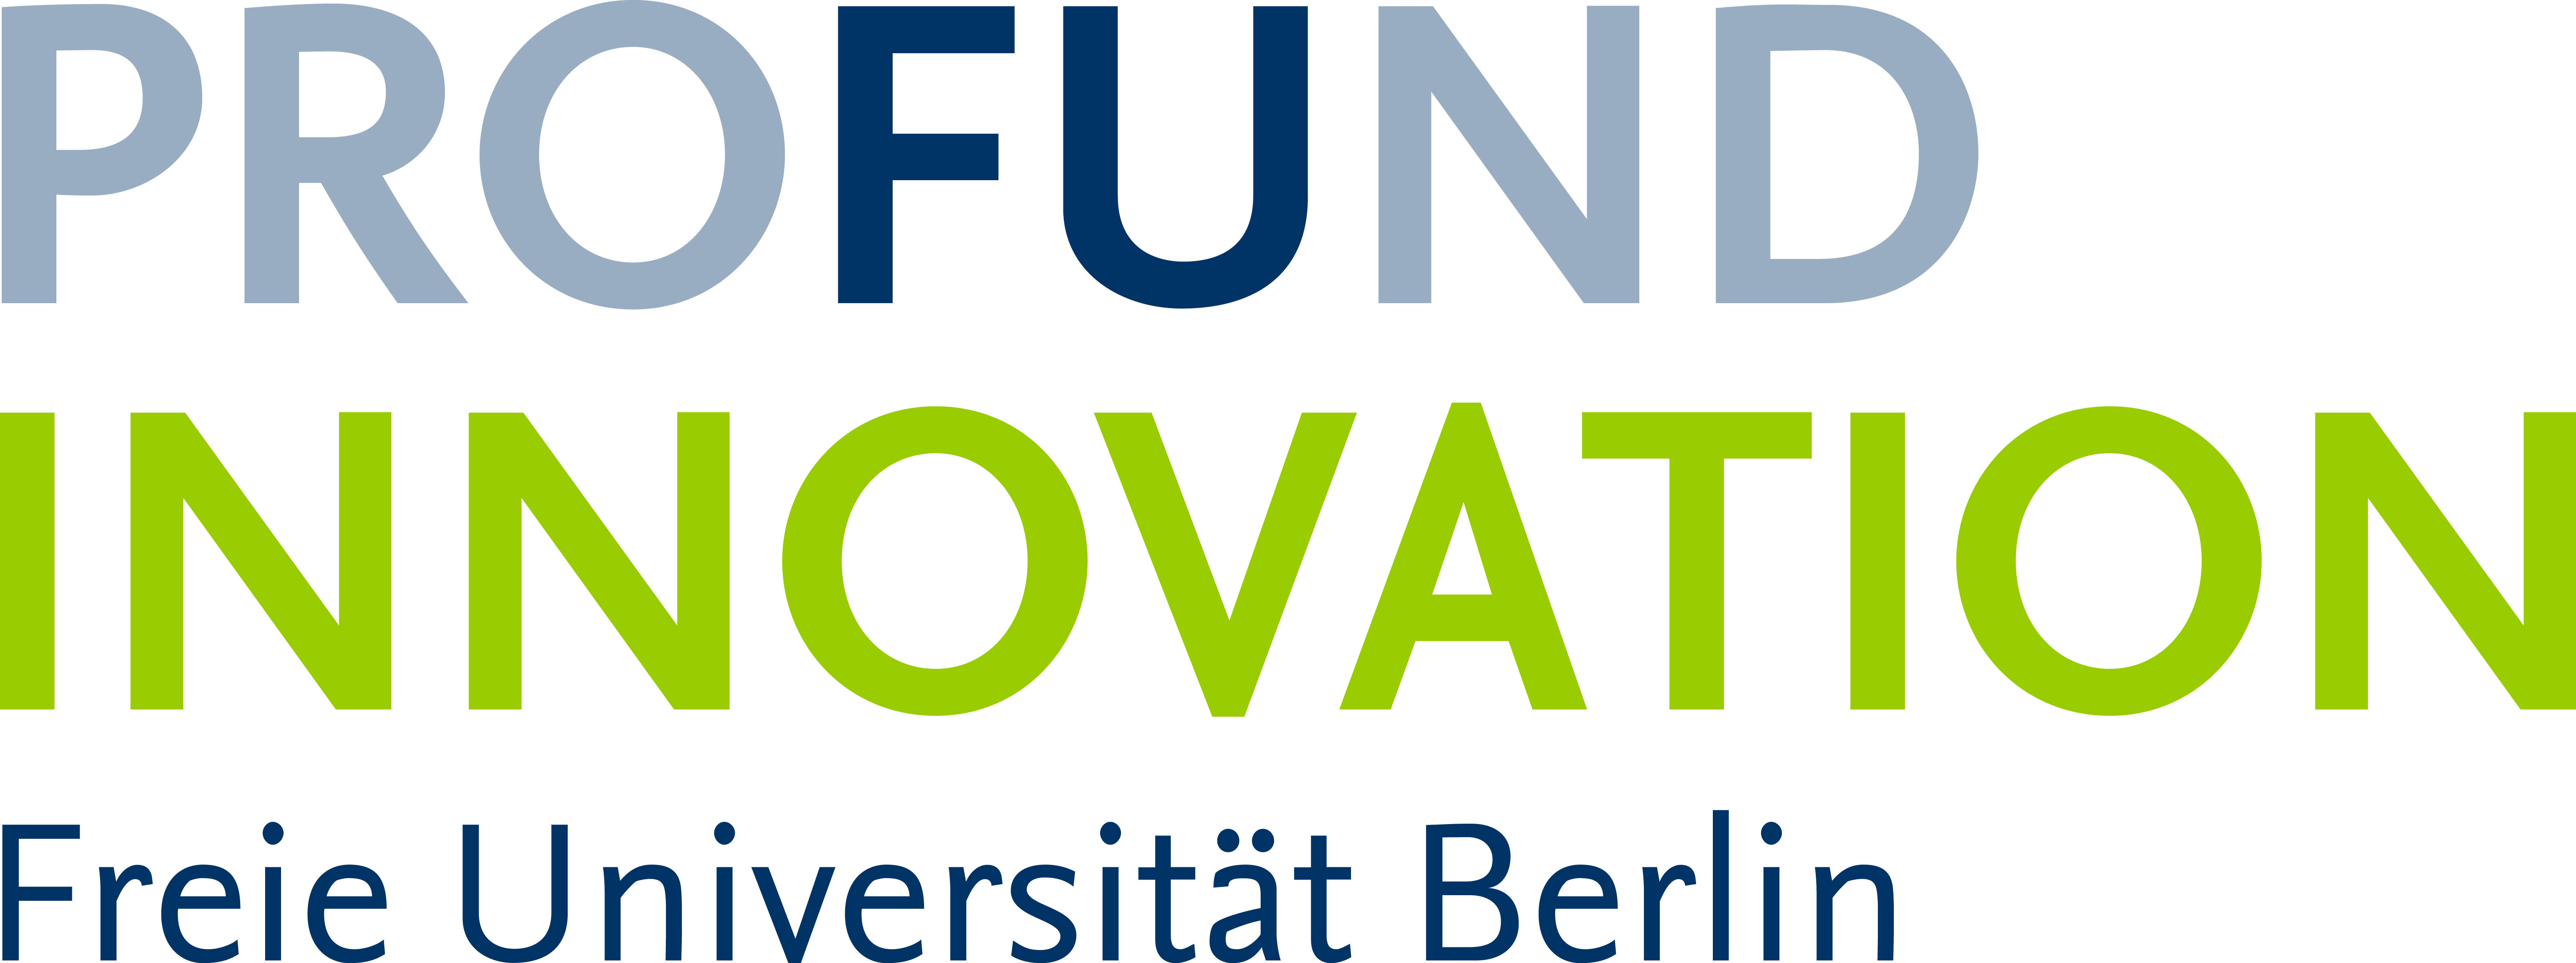 PROFUND INNOVATION - Freie Universität Berlin